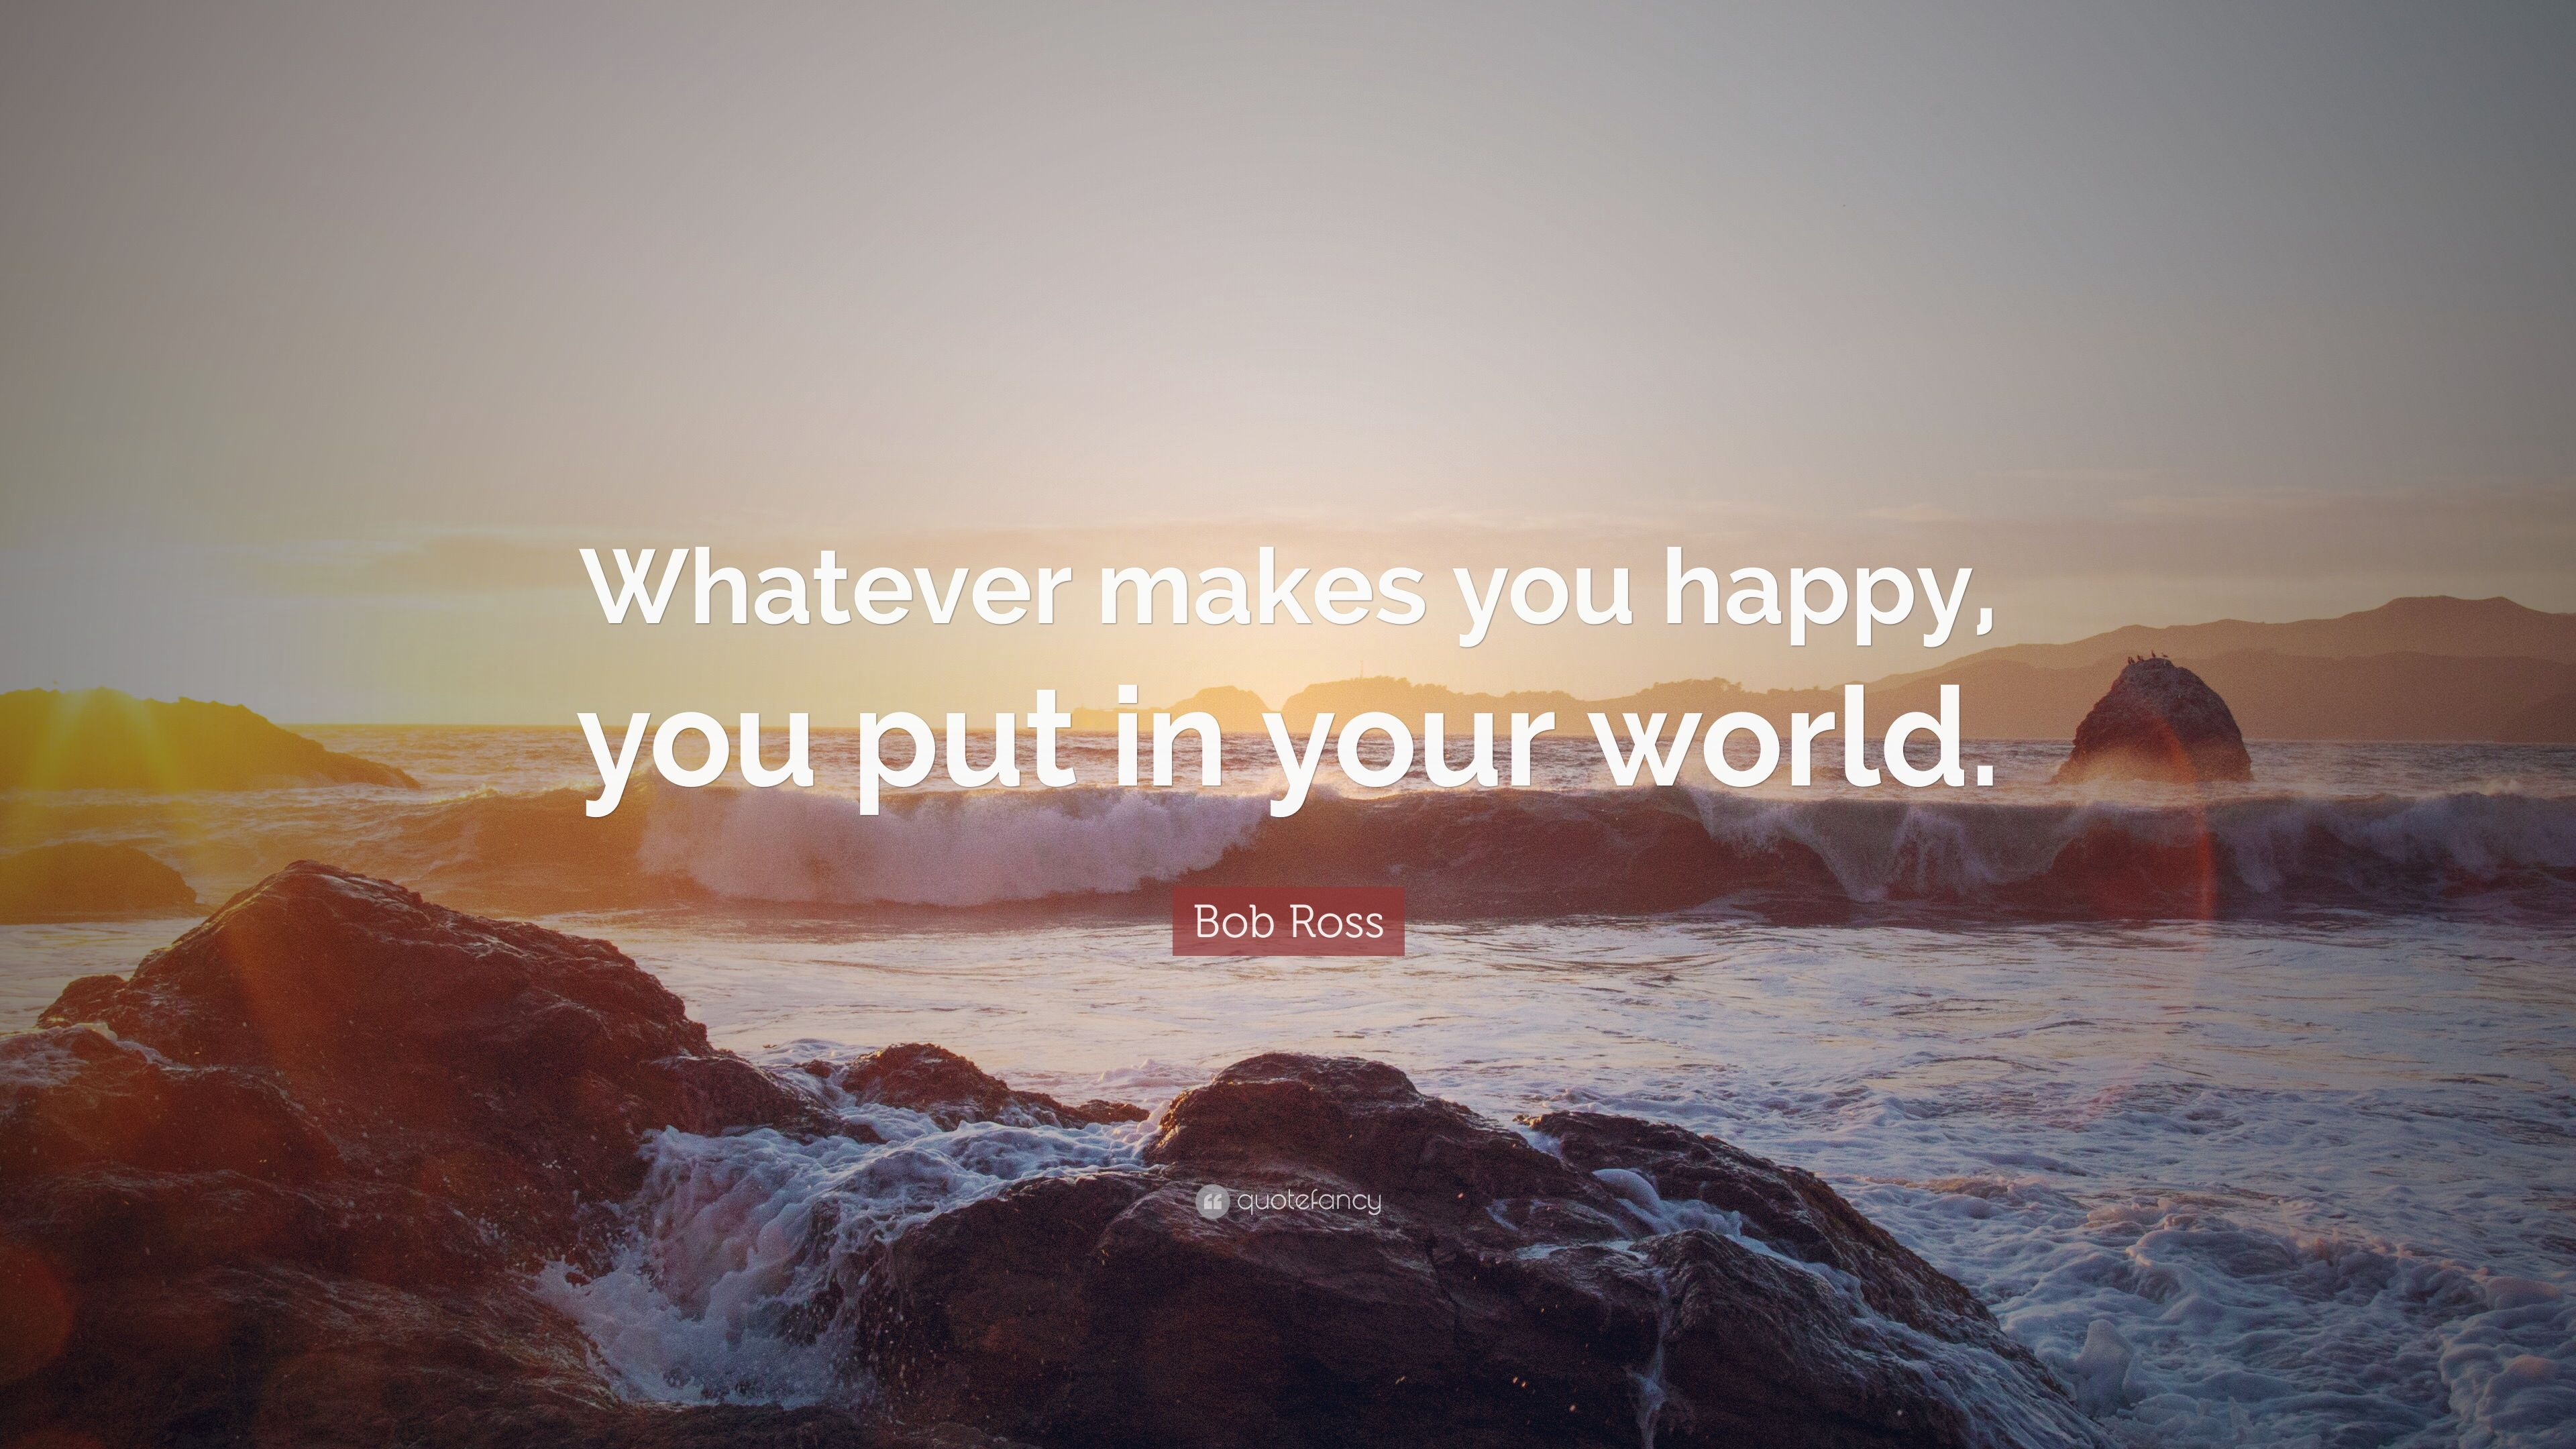 Bob Ross Quotes Your World